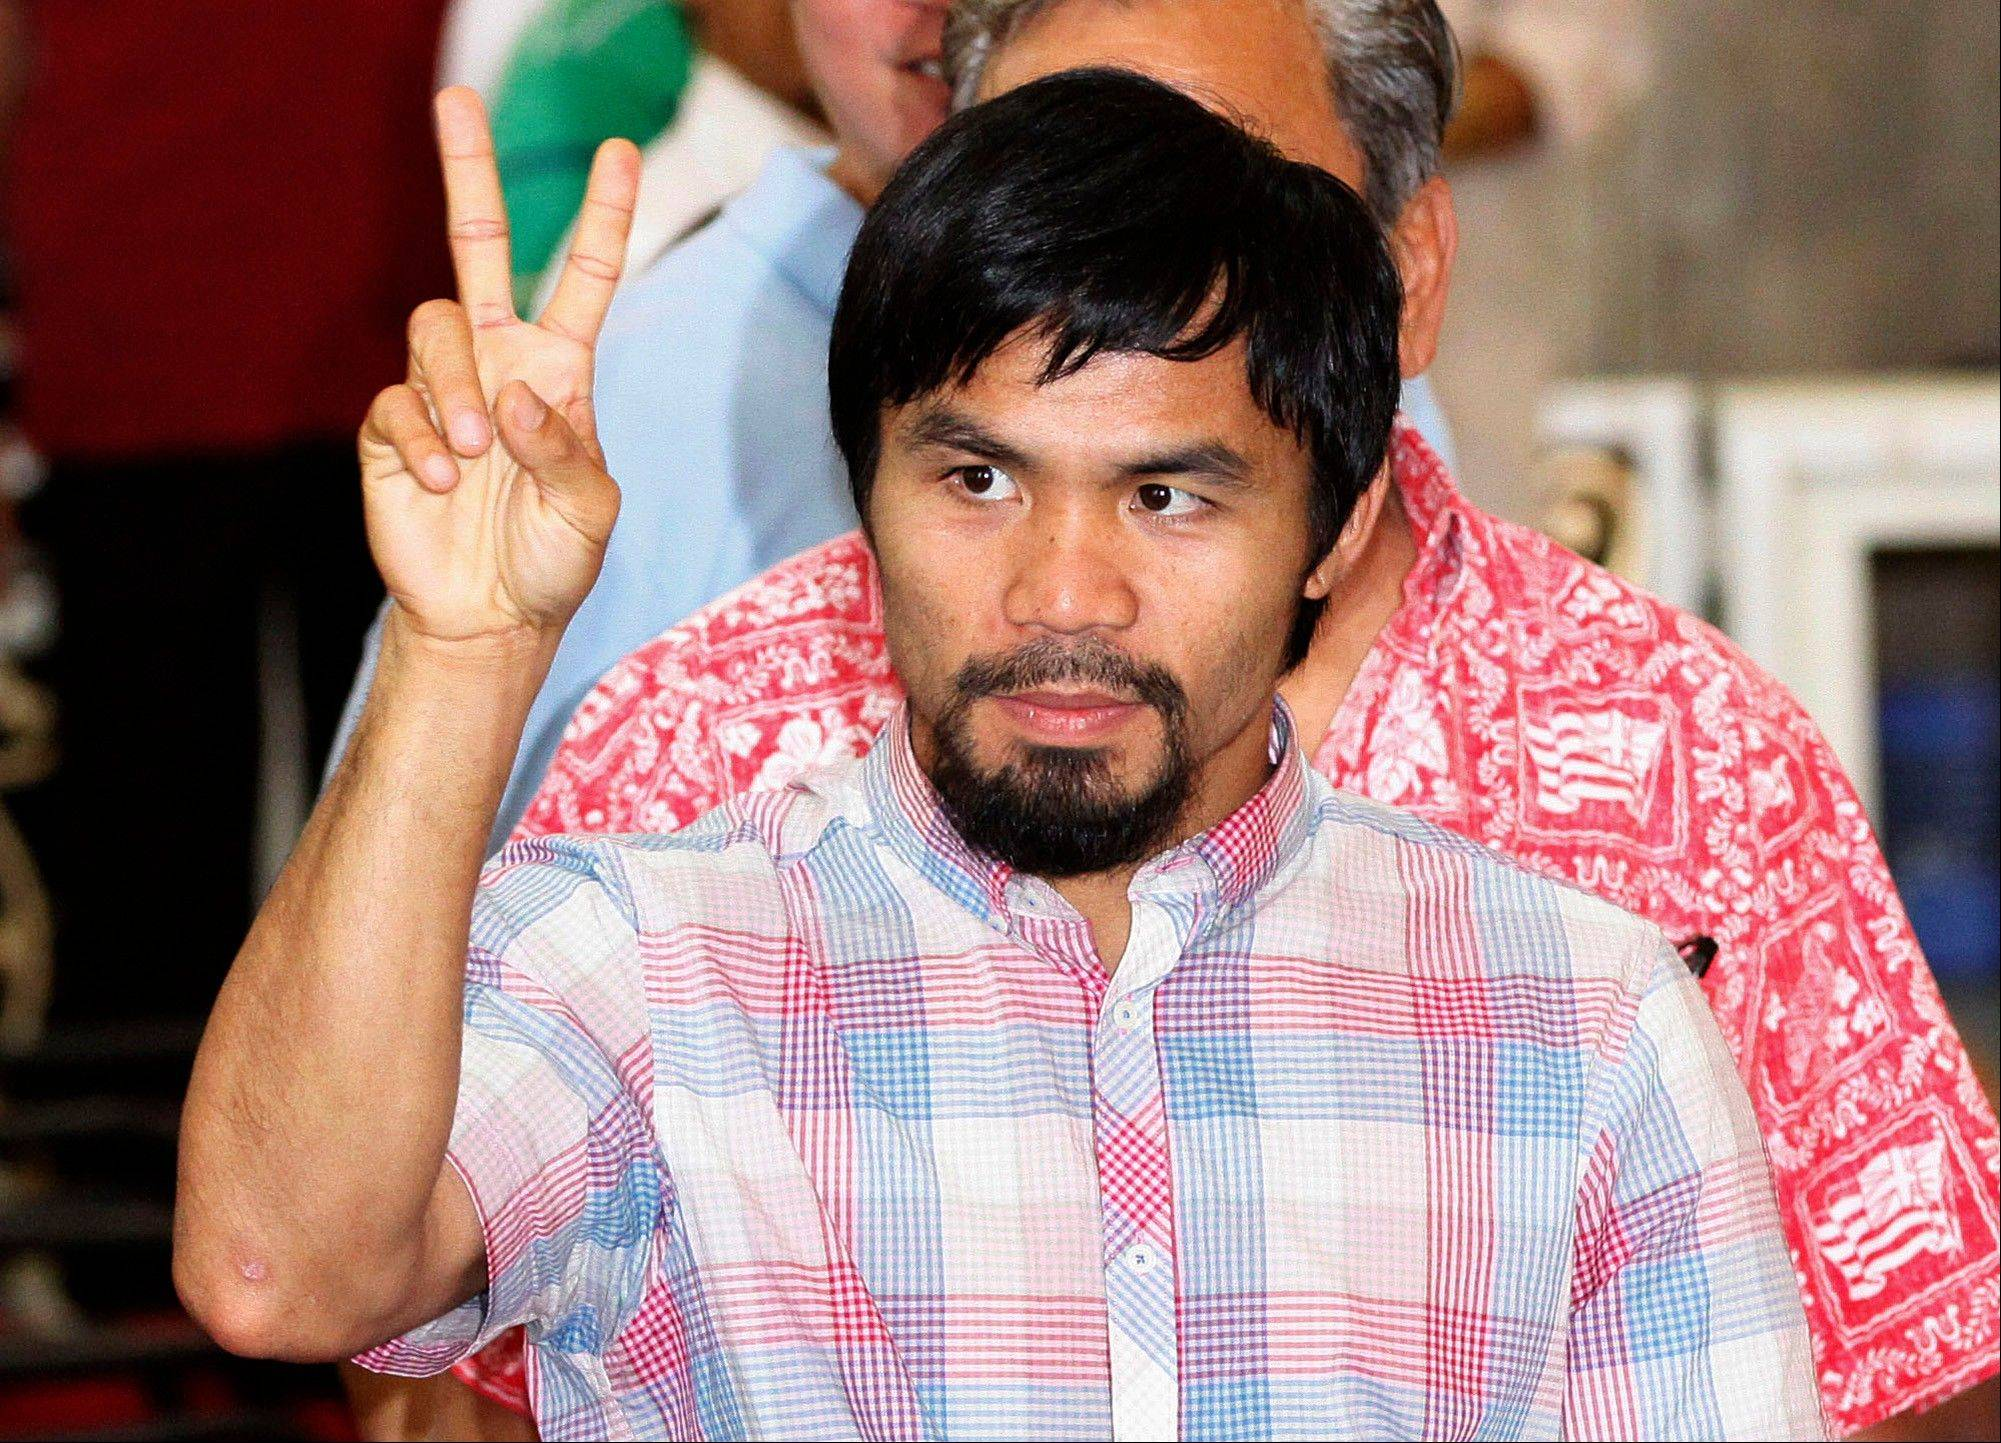 Congressman and former welterweight world champion Manny Pacquiao flashes the sign of peace during a Mass in a Catholic church Saturday in Manila, Philippines. Pacquiao, whose homecoming was much less festive because of his split decision defeat in Las Vegas against American boxer Timothy Bradley, cut short his vacation after the controversial fight to help flood victims in his home province.